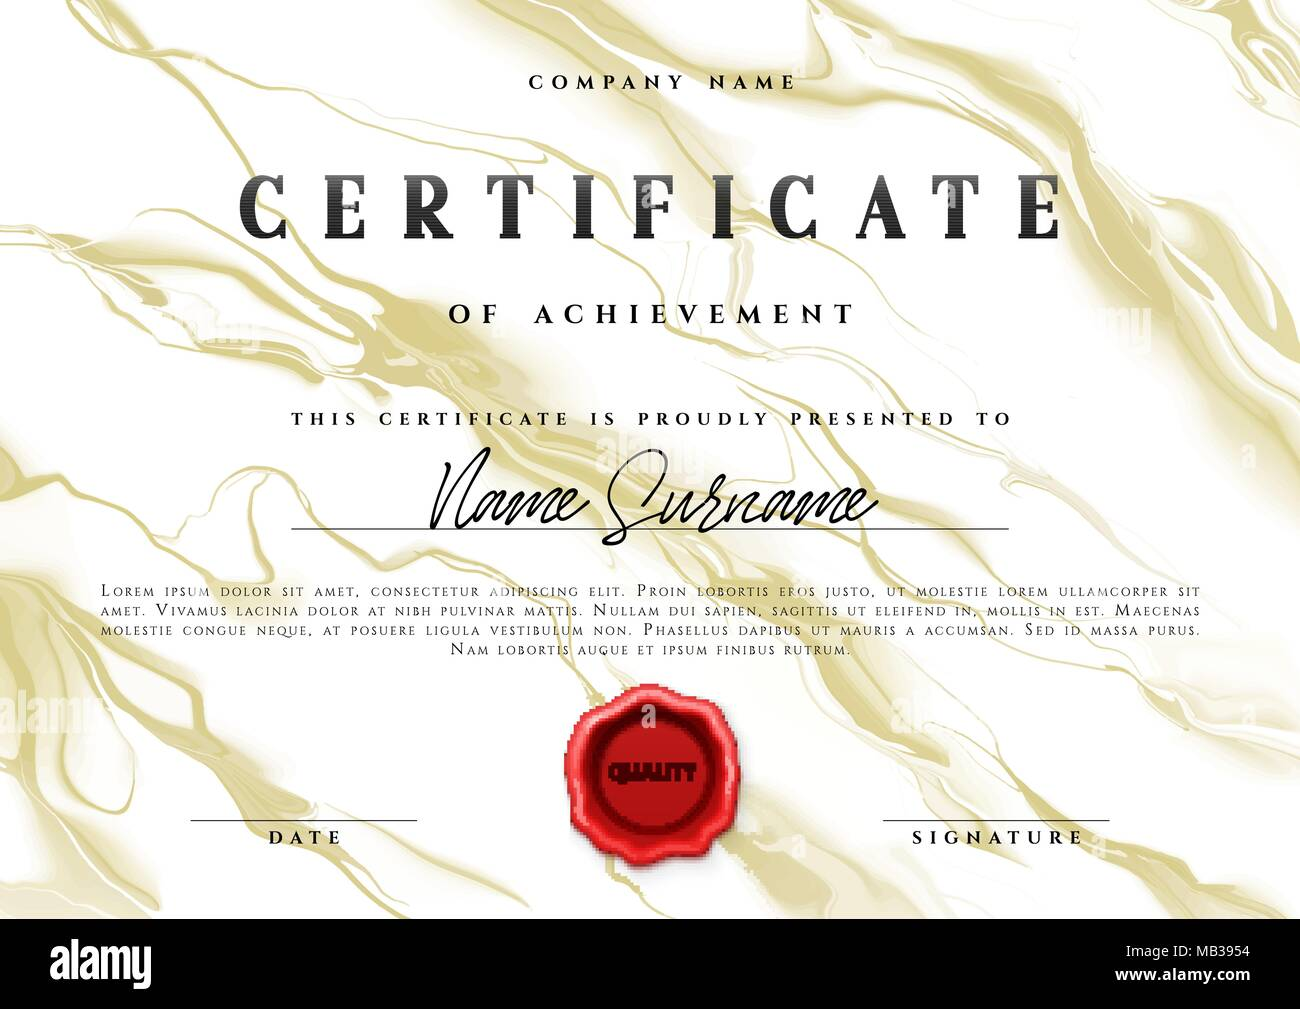 Certificate appreciation creative template stock photos template design of the certificate vector diploma stock image 1betcityfo Gallery